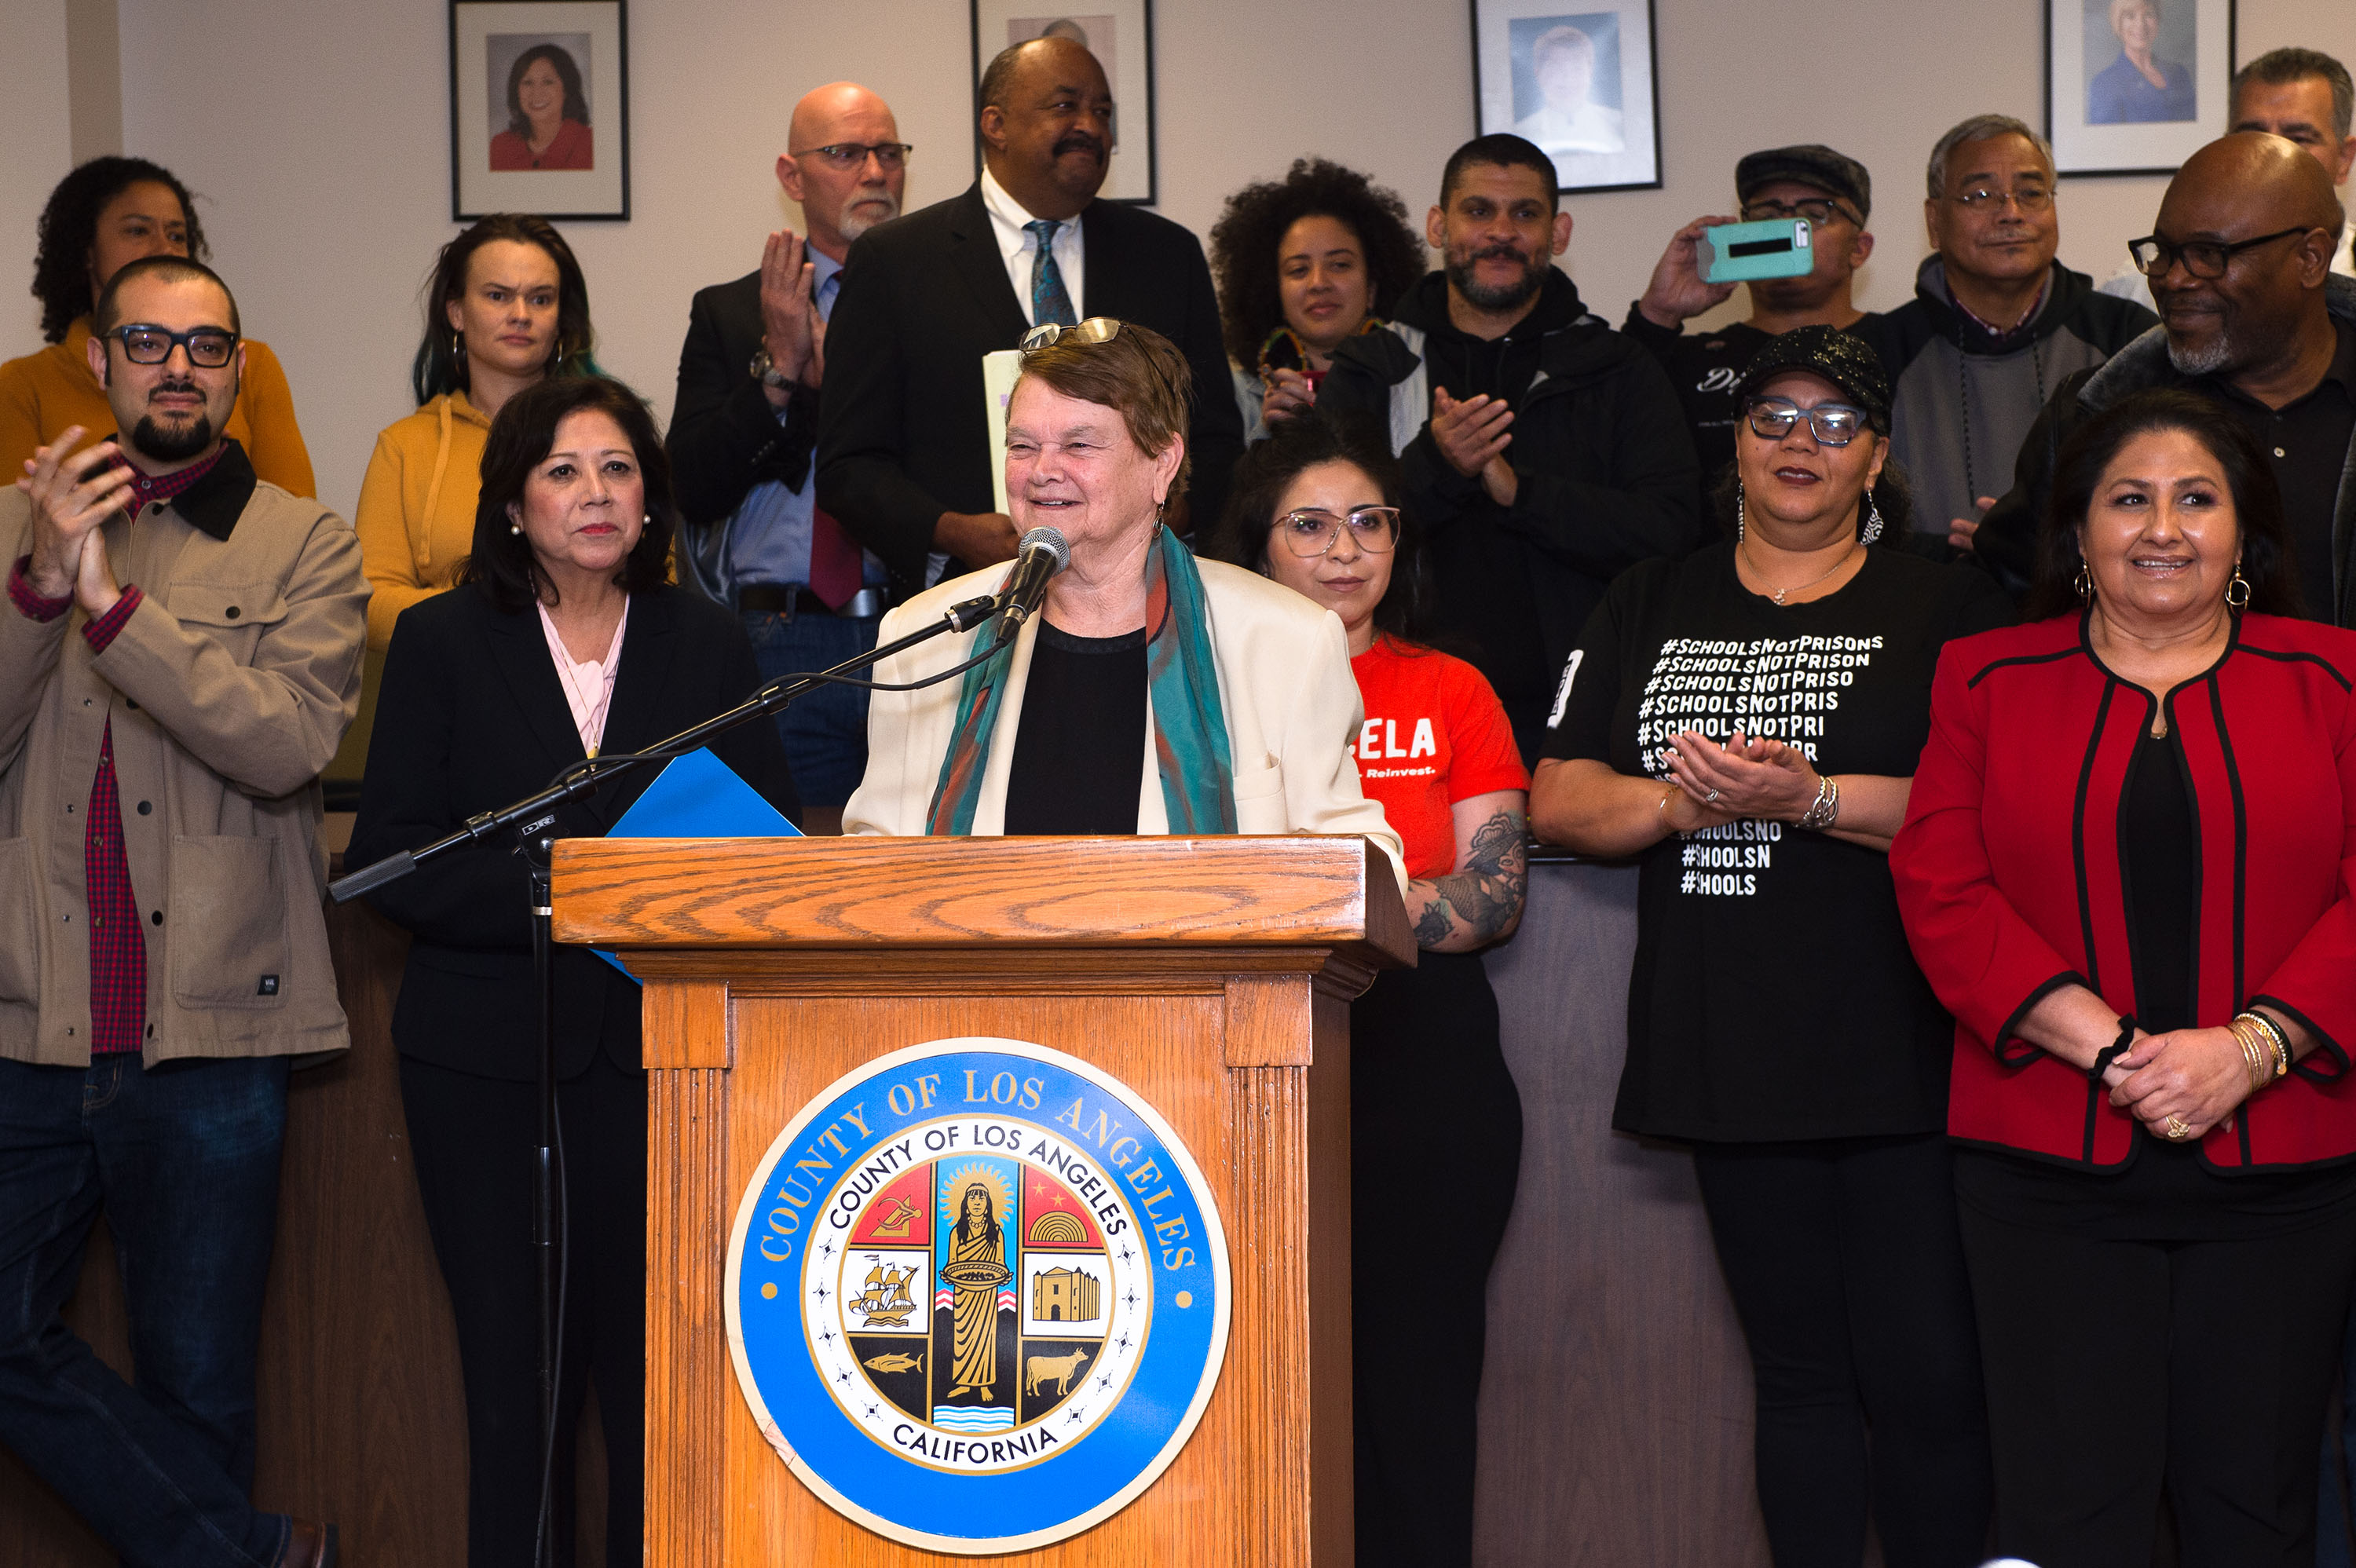 District 3 – Supervisor Sheila Kuehl<br> <b>March 10, 2020 – Alternatives to Incarceration Press Conference </b><br> <i>Photo by Bryan Chan / Board of Supervisors</i>